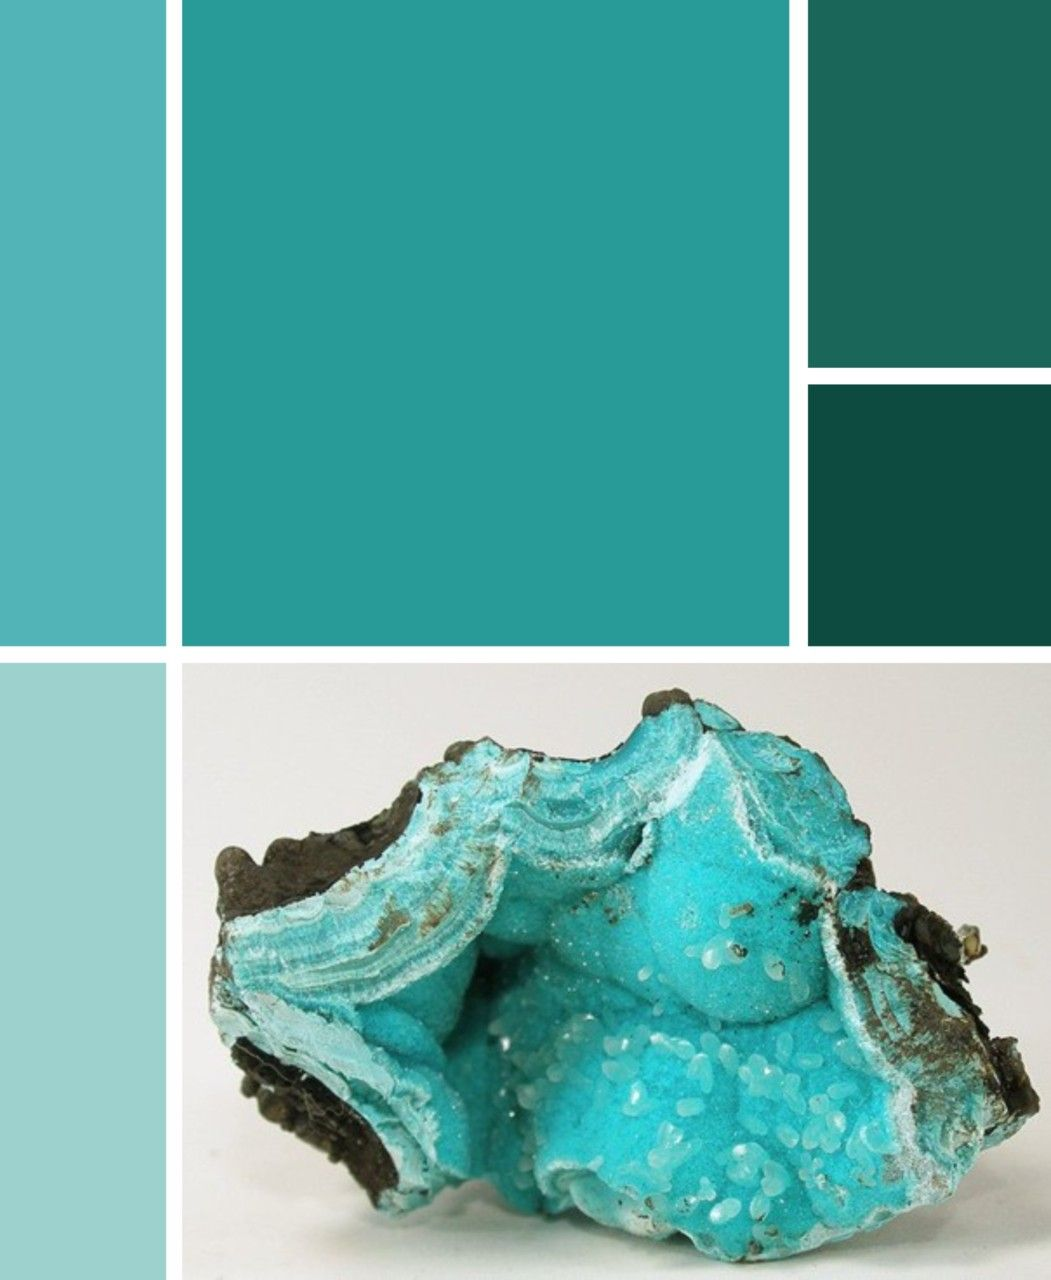 Aquamarine Paint Colors Via Bhg Com: Shades I Am Thinking Of Using